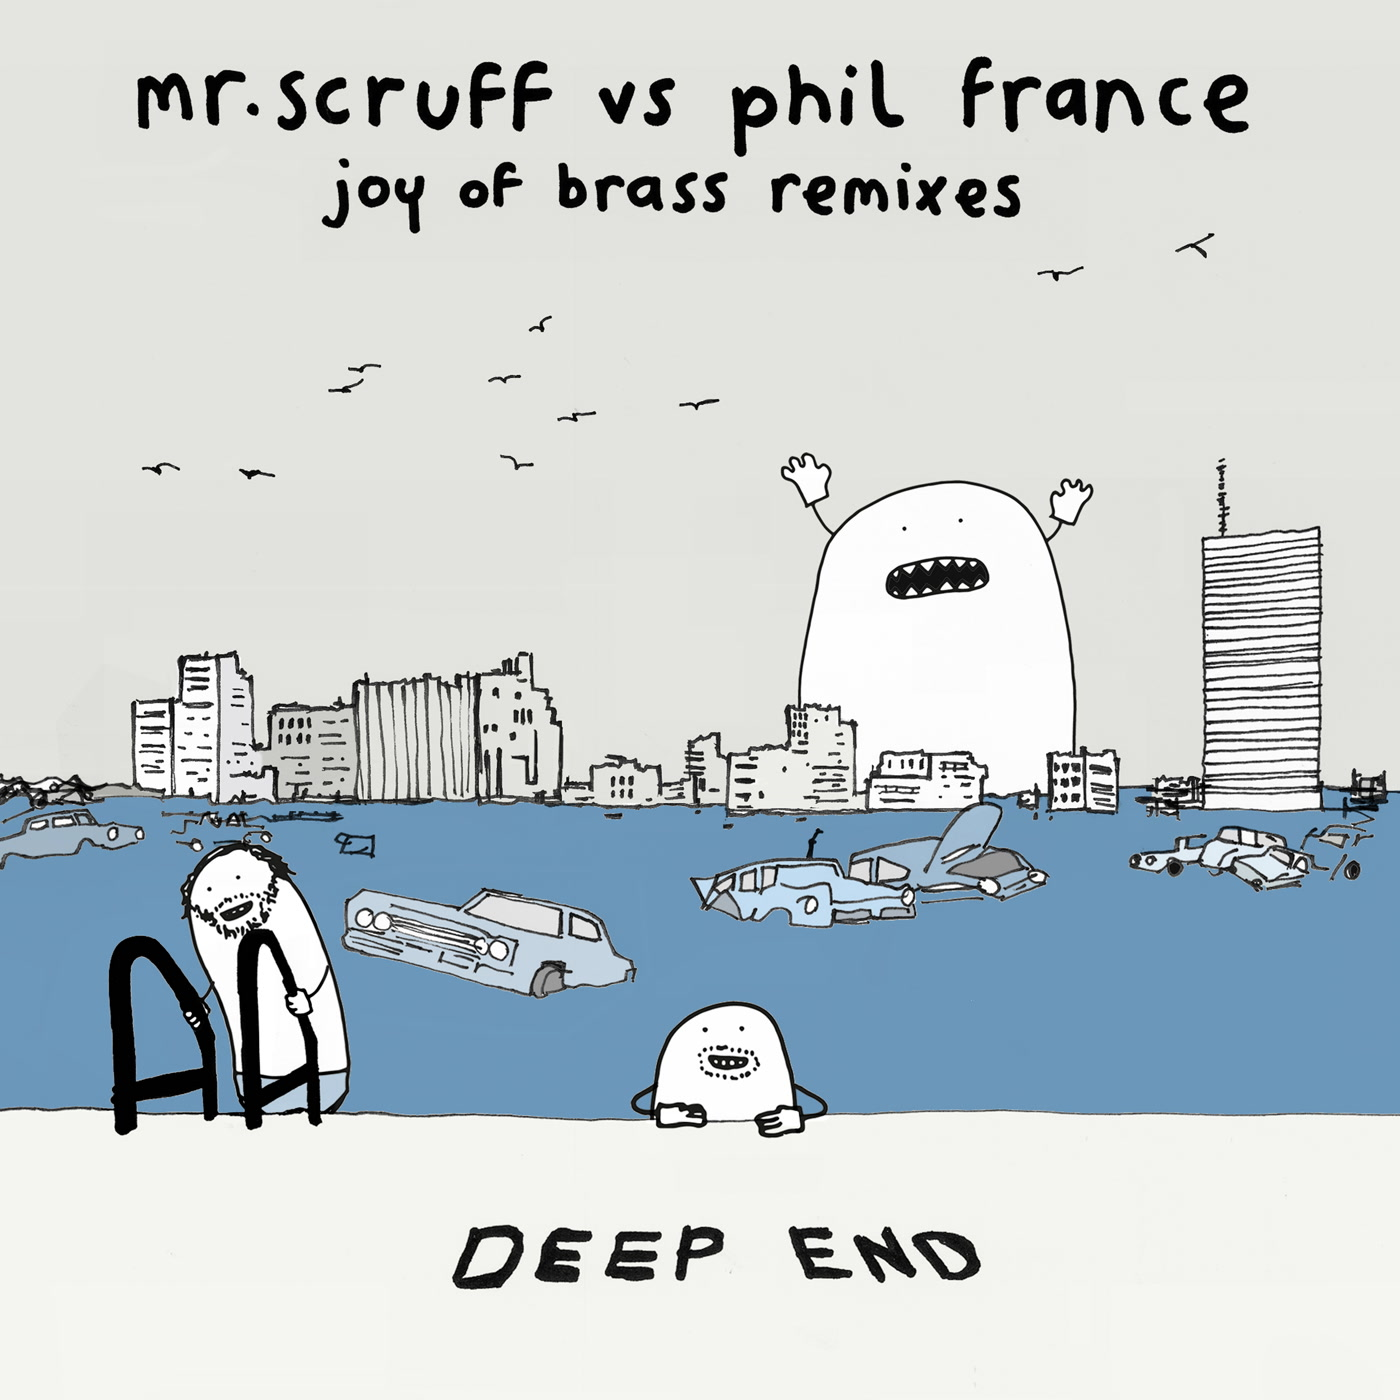 joy-of-brass-remixes-mr-scruff-vs-phil-france-phil-france-mr-scruff